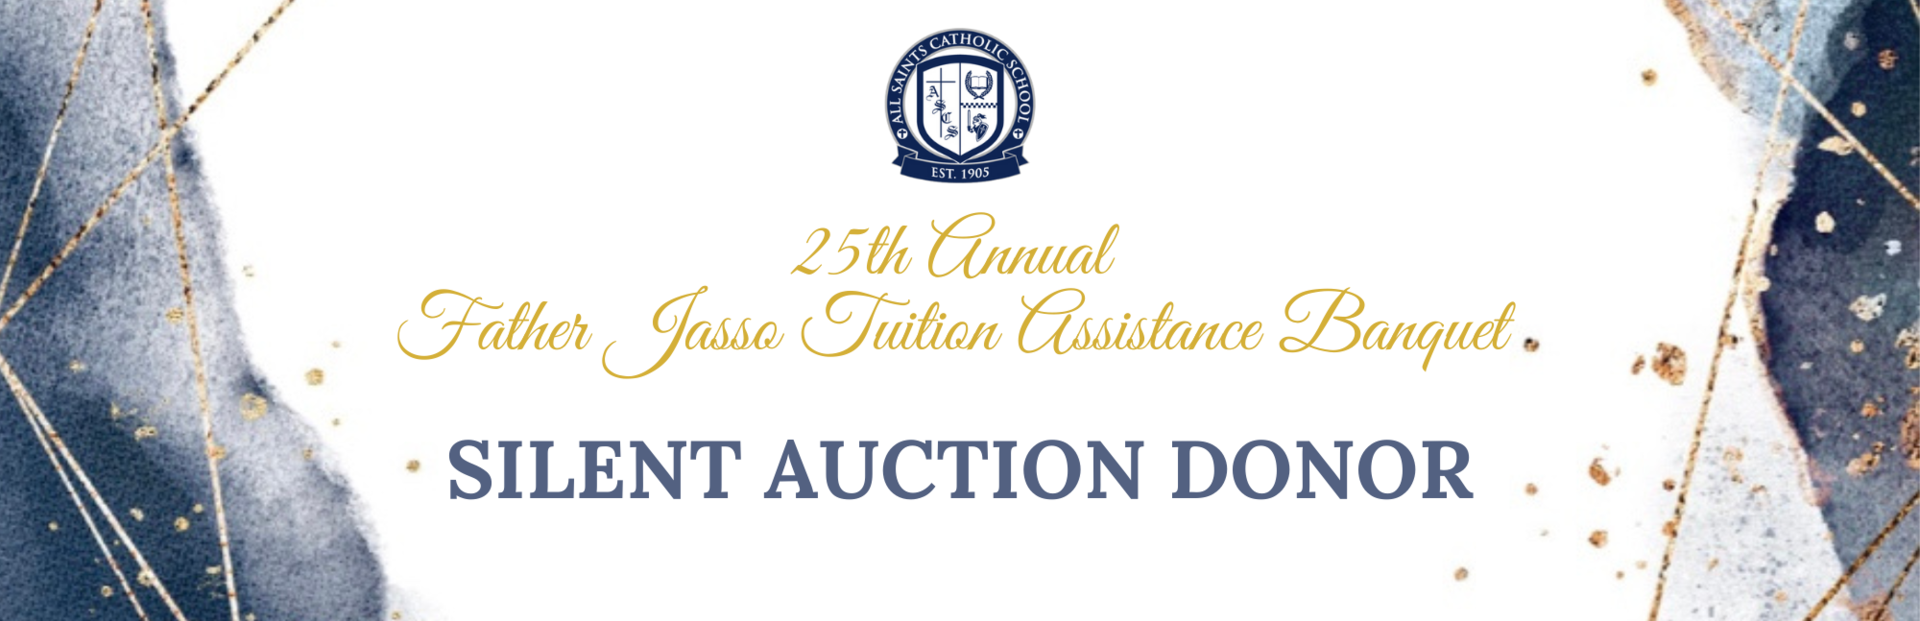 Silent Auction Donor